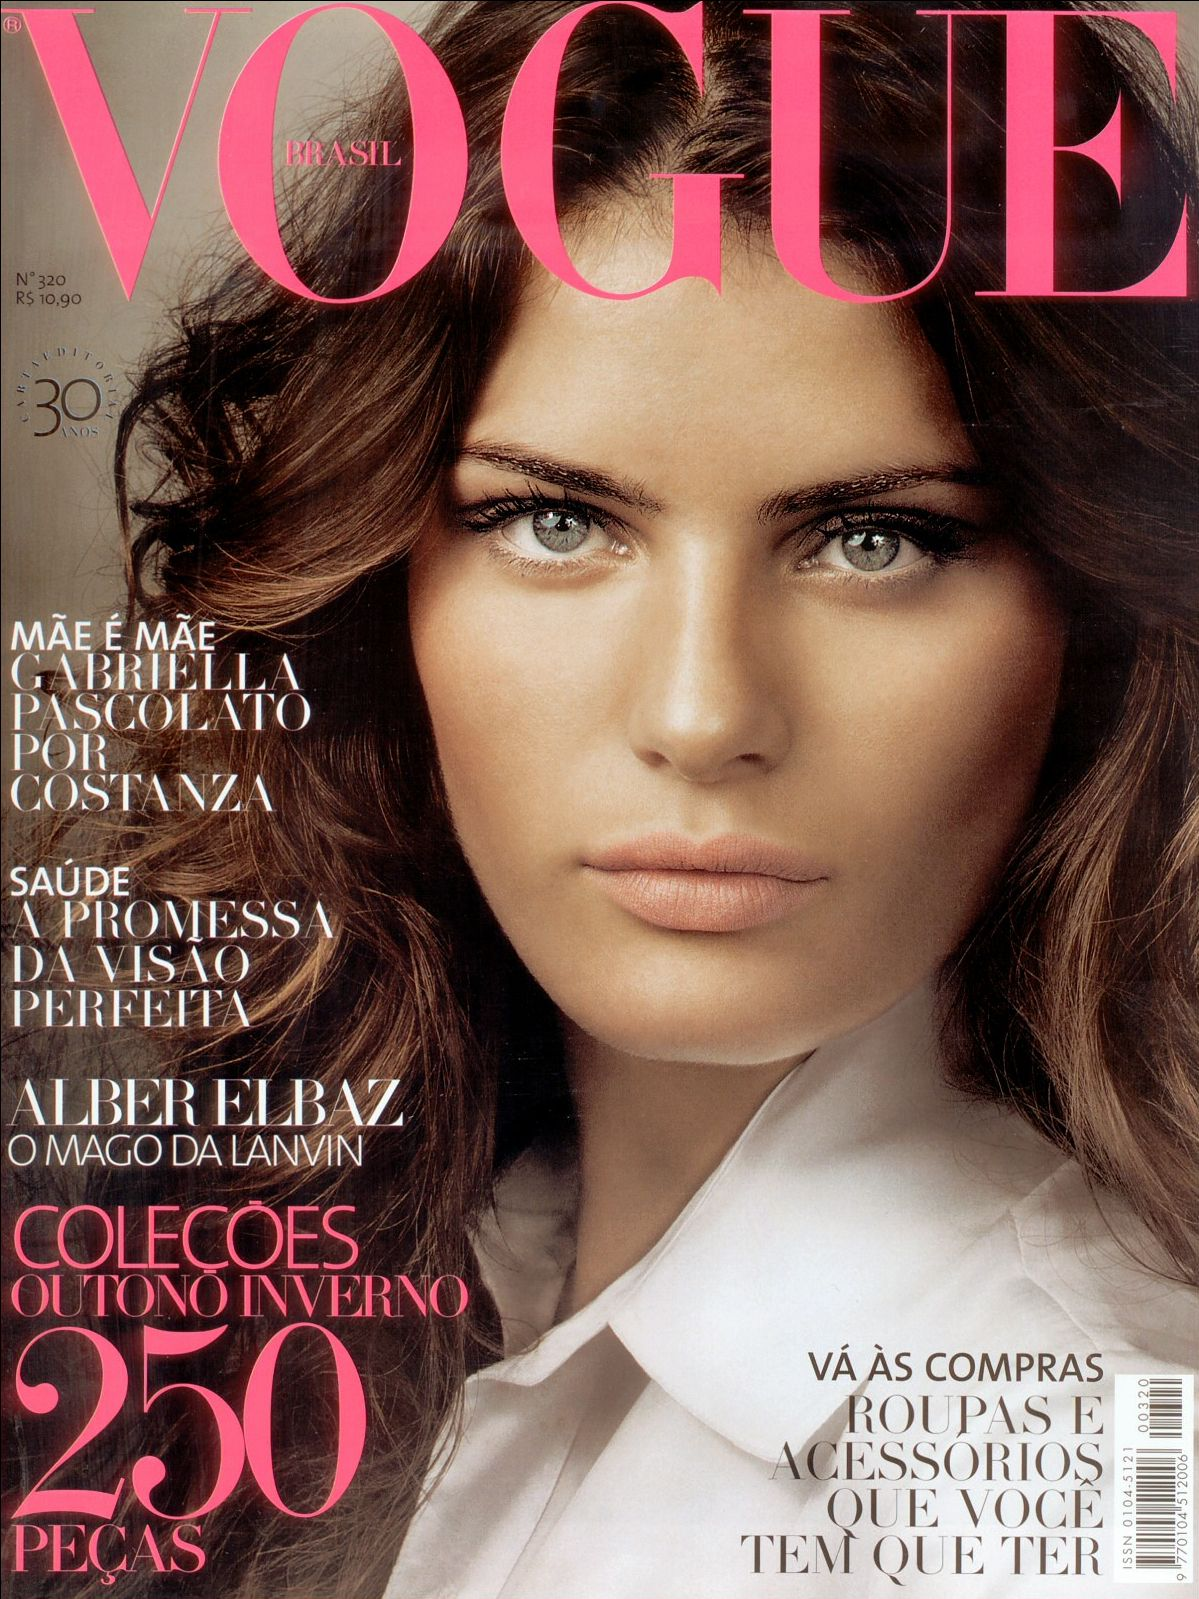 fontana isabeli vogue 2005 brazil covers march magazines paris april throughout years 2004 october voguegraphy testino mario july june